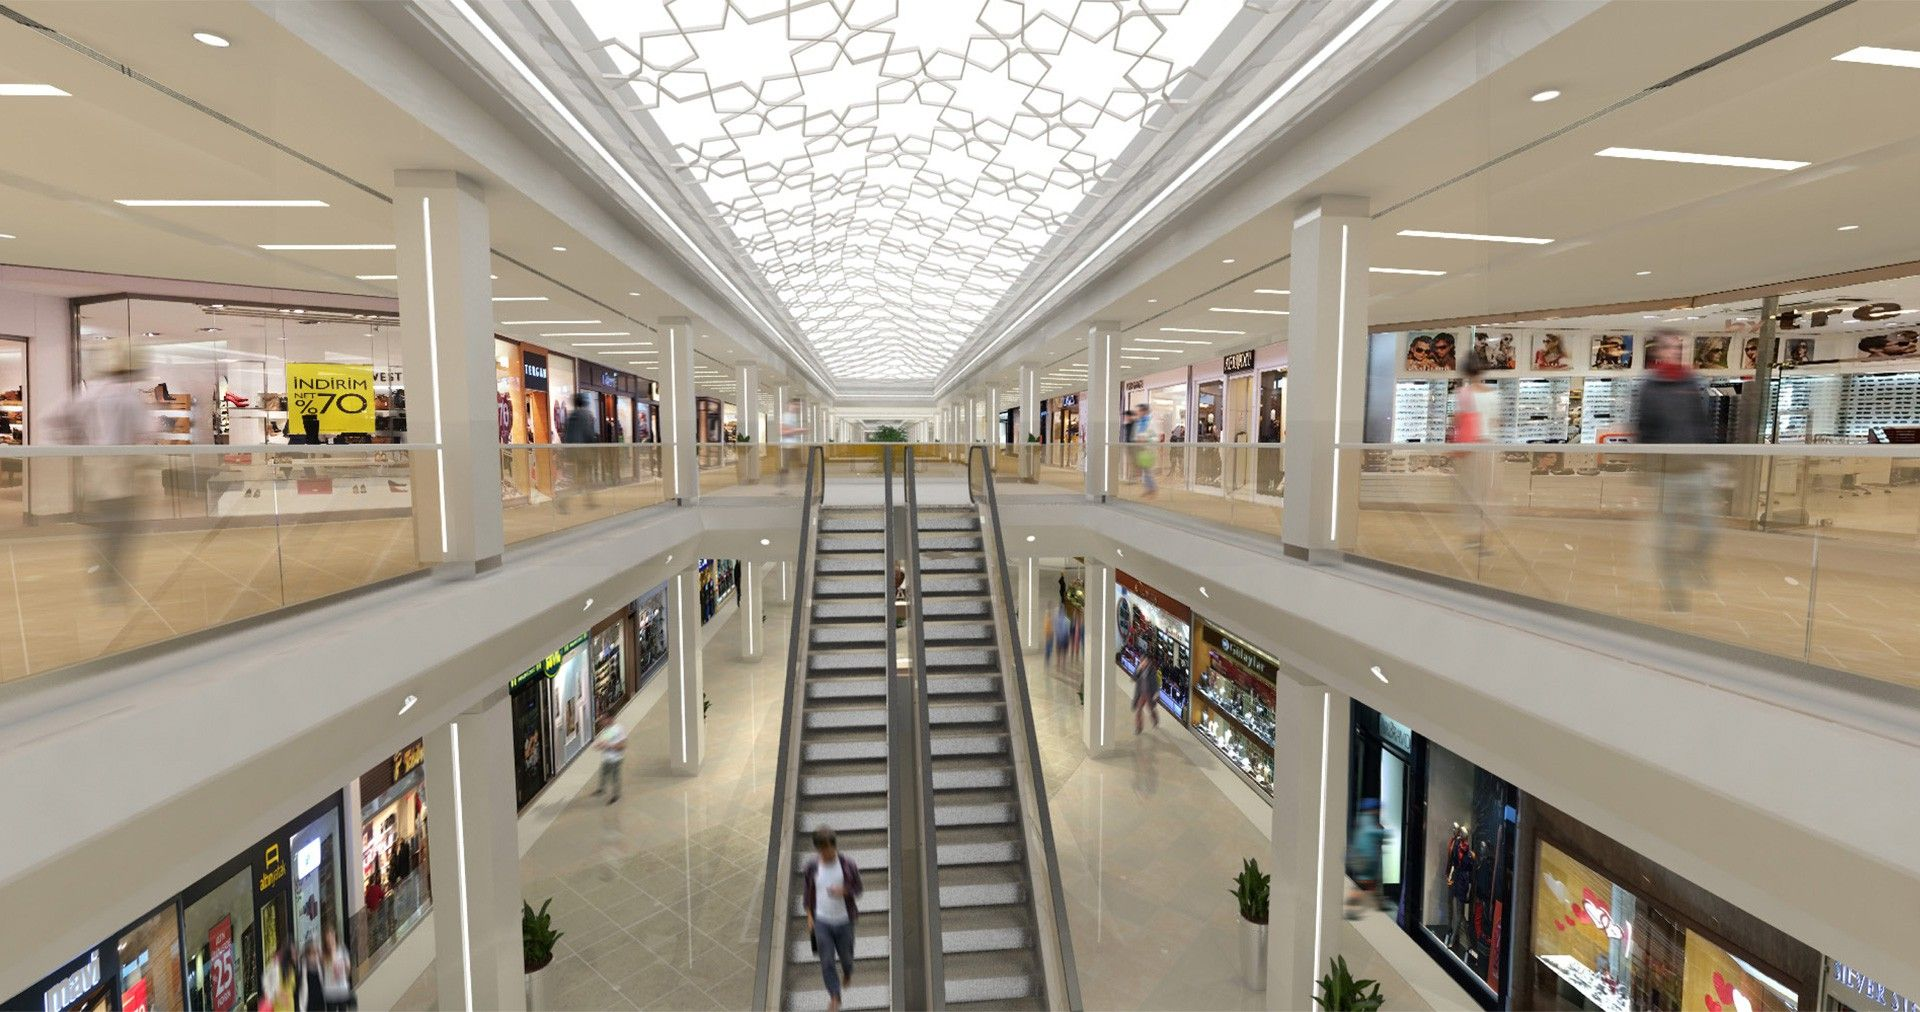 This Is A Modern Approach To Designing A Shopping Mall It Is